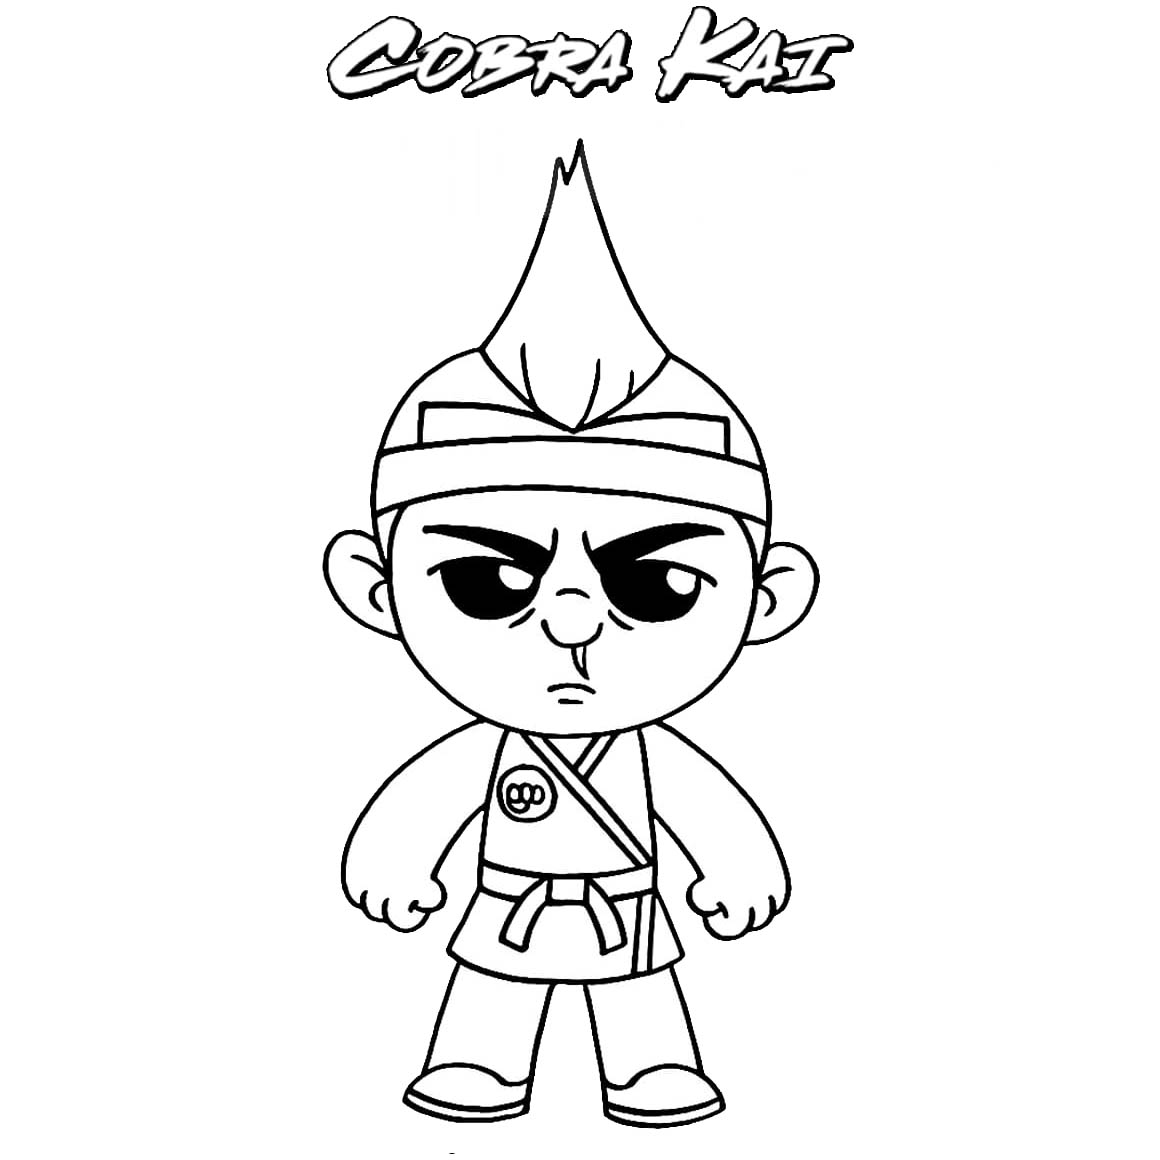 Hawk From Cobra Kai Coloring Pages Xcolorings Com